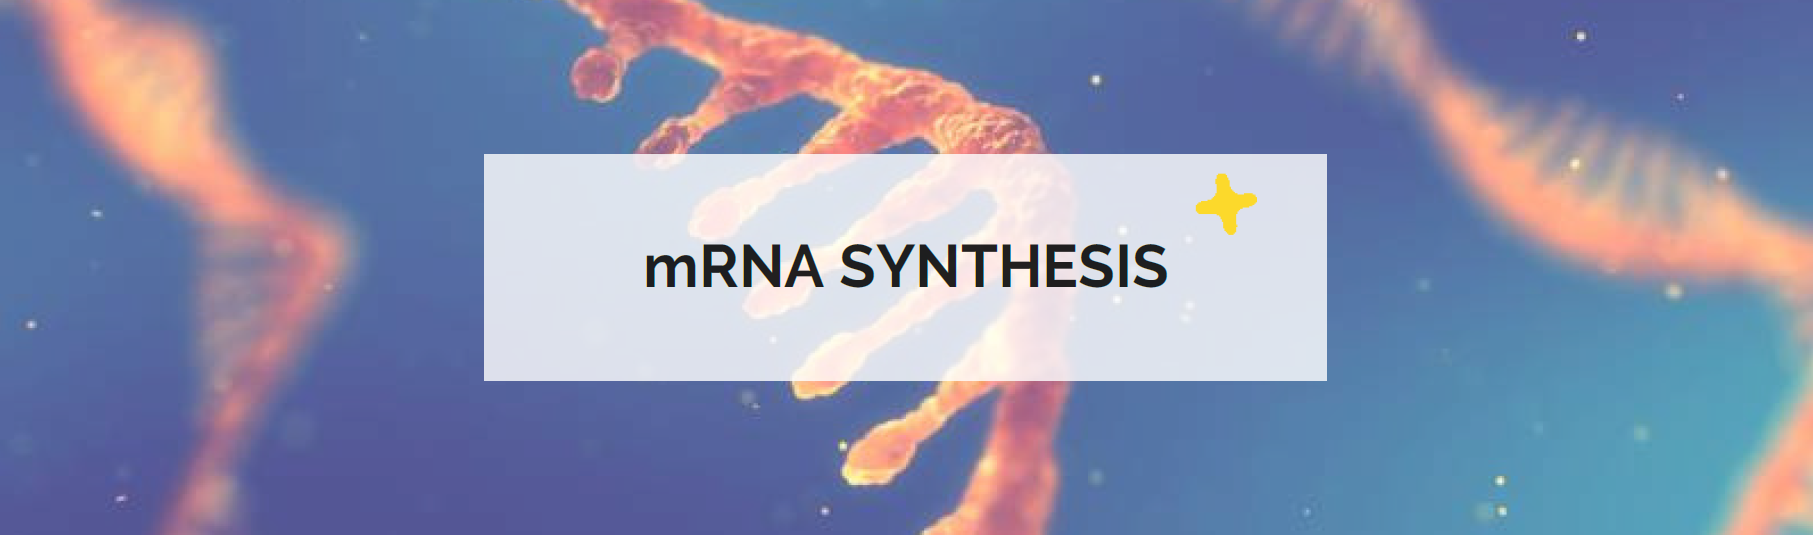 mRNA synthesis